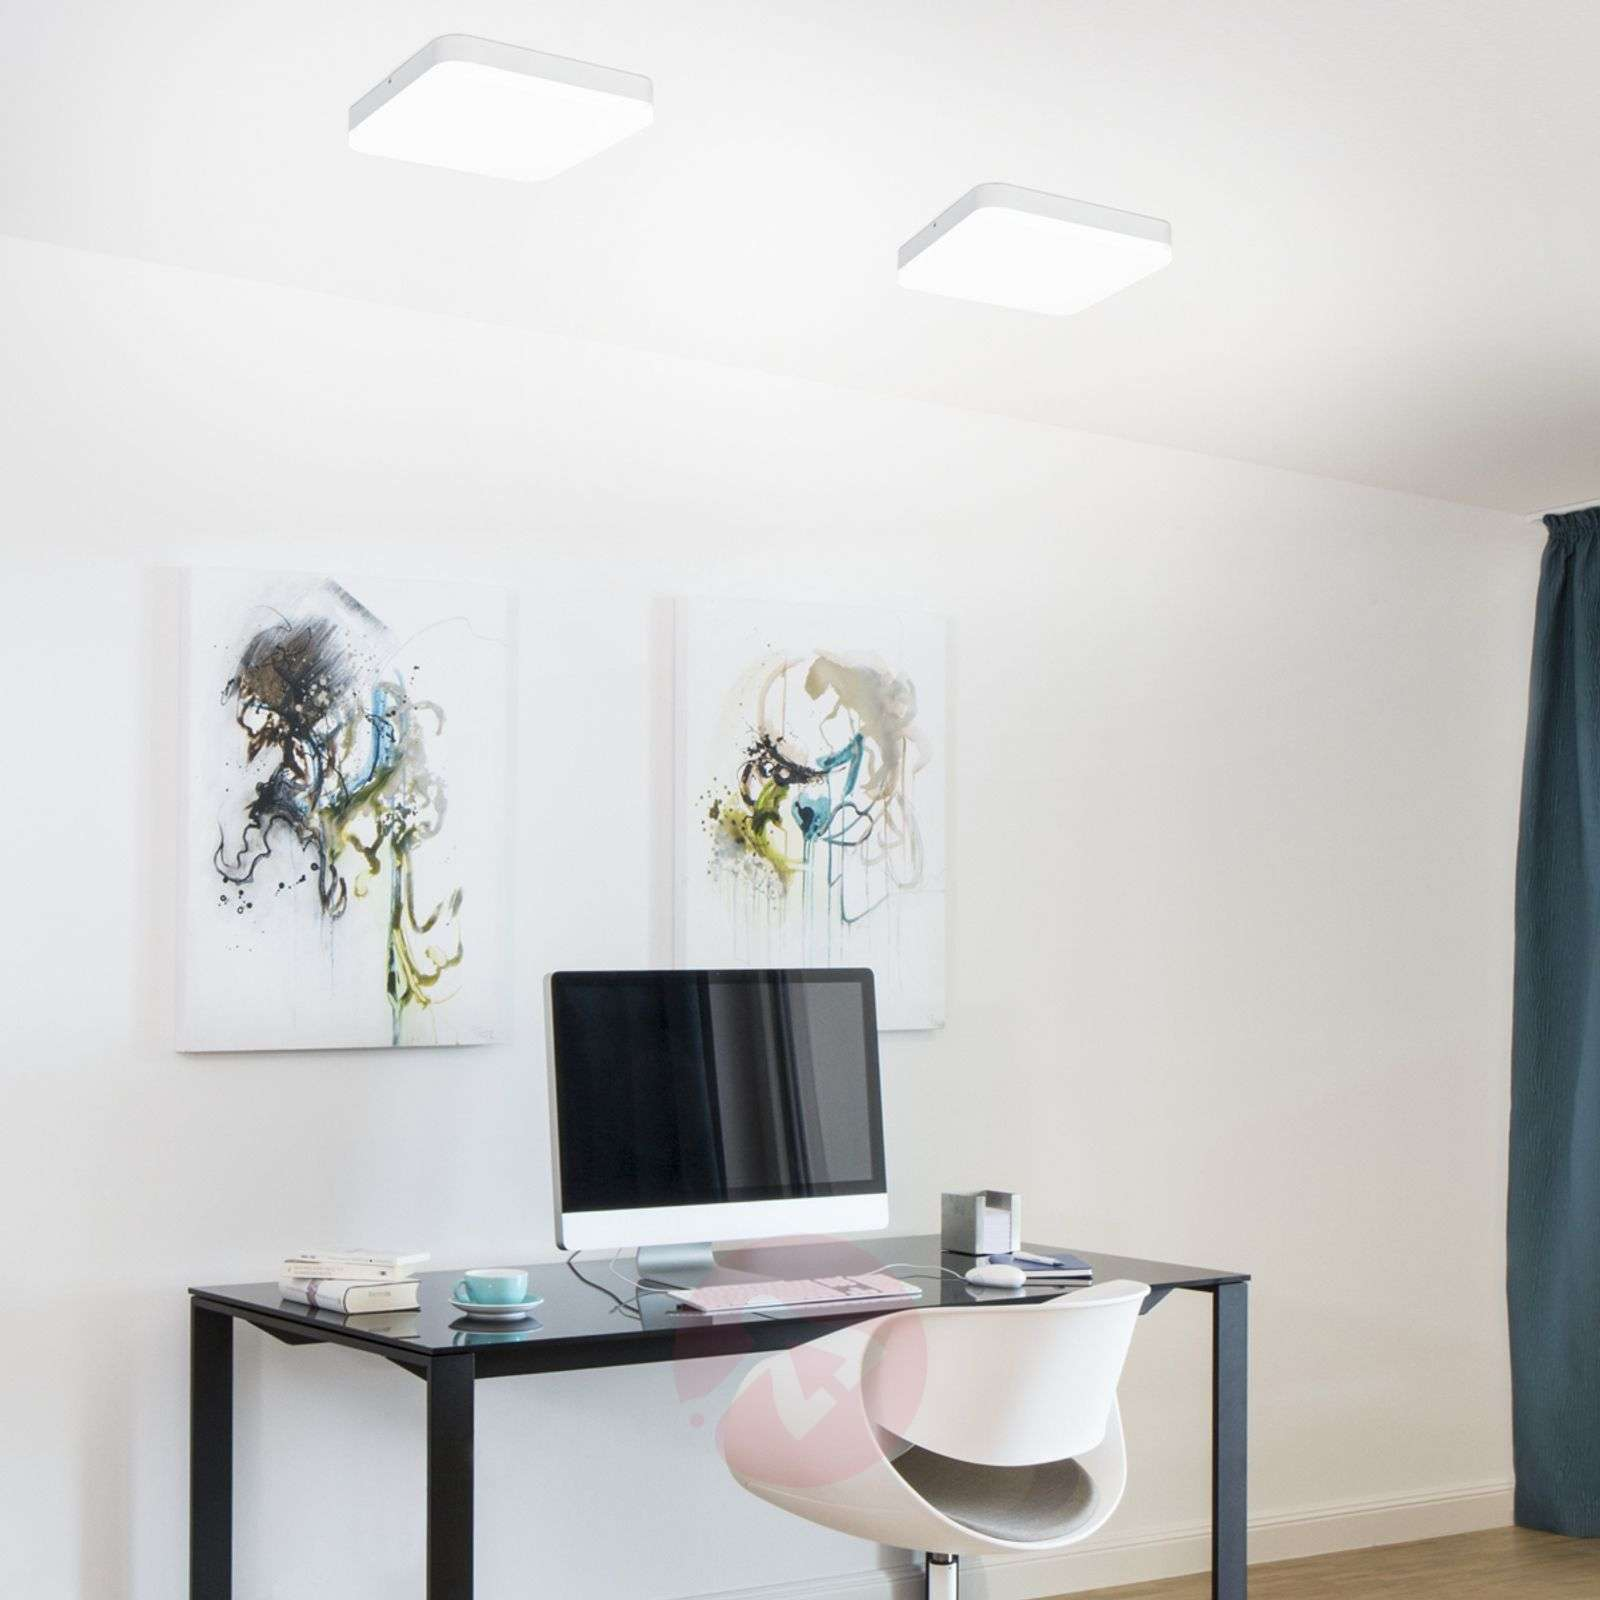 Tunnistimella – LED-kattovalaisin Office Square-8559227-02